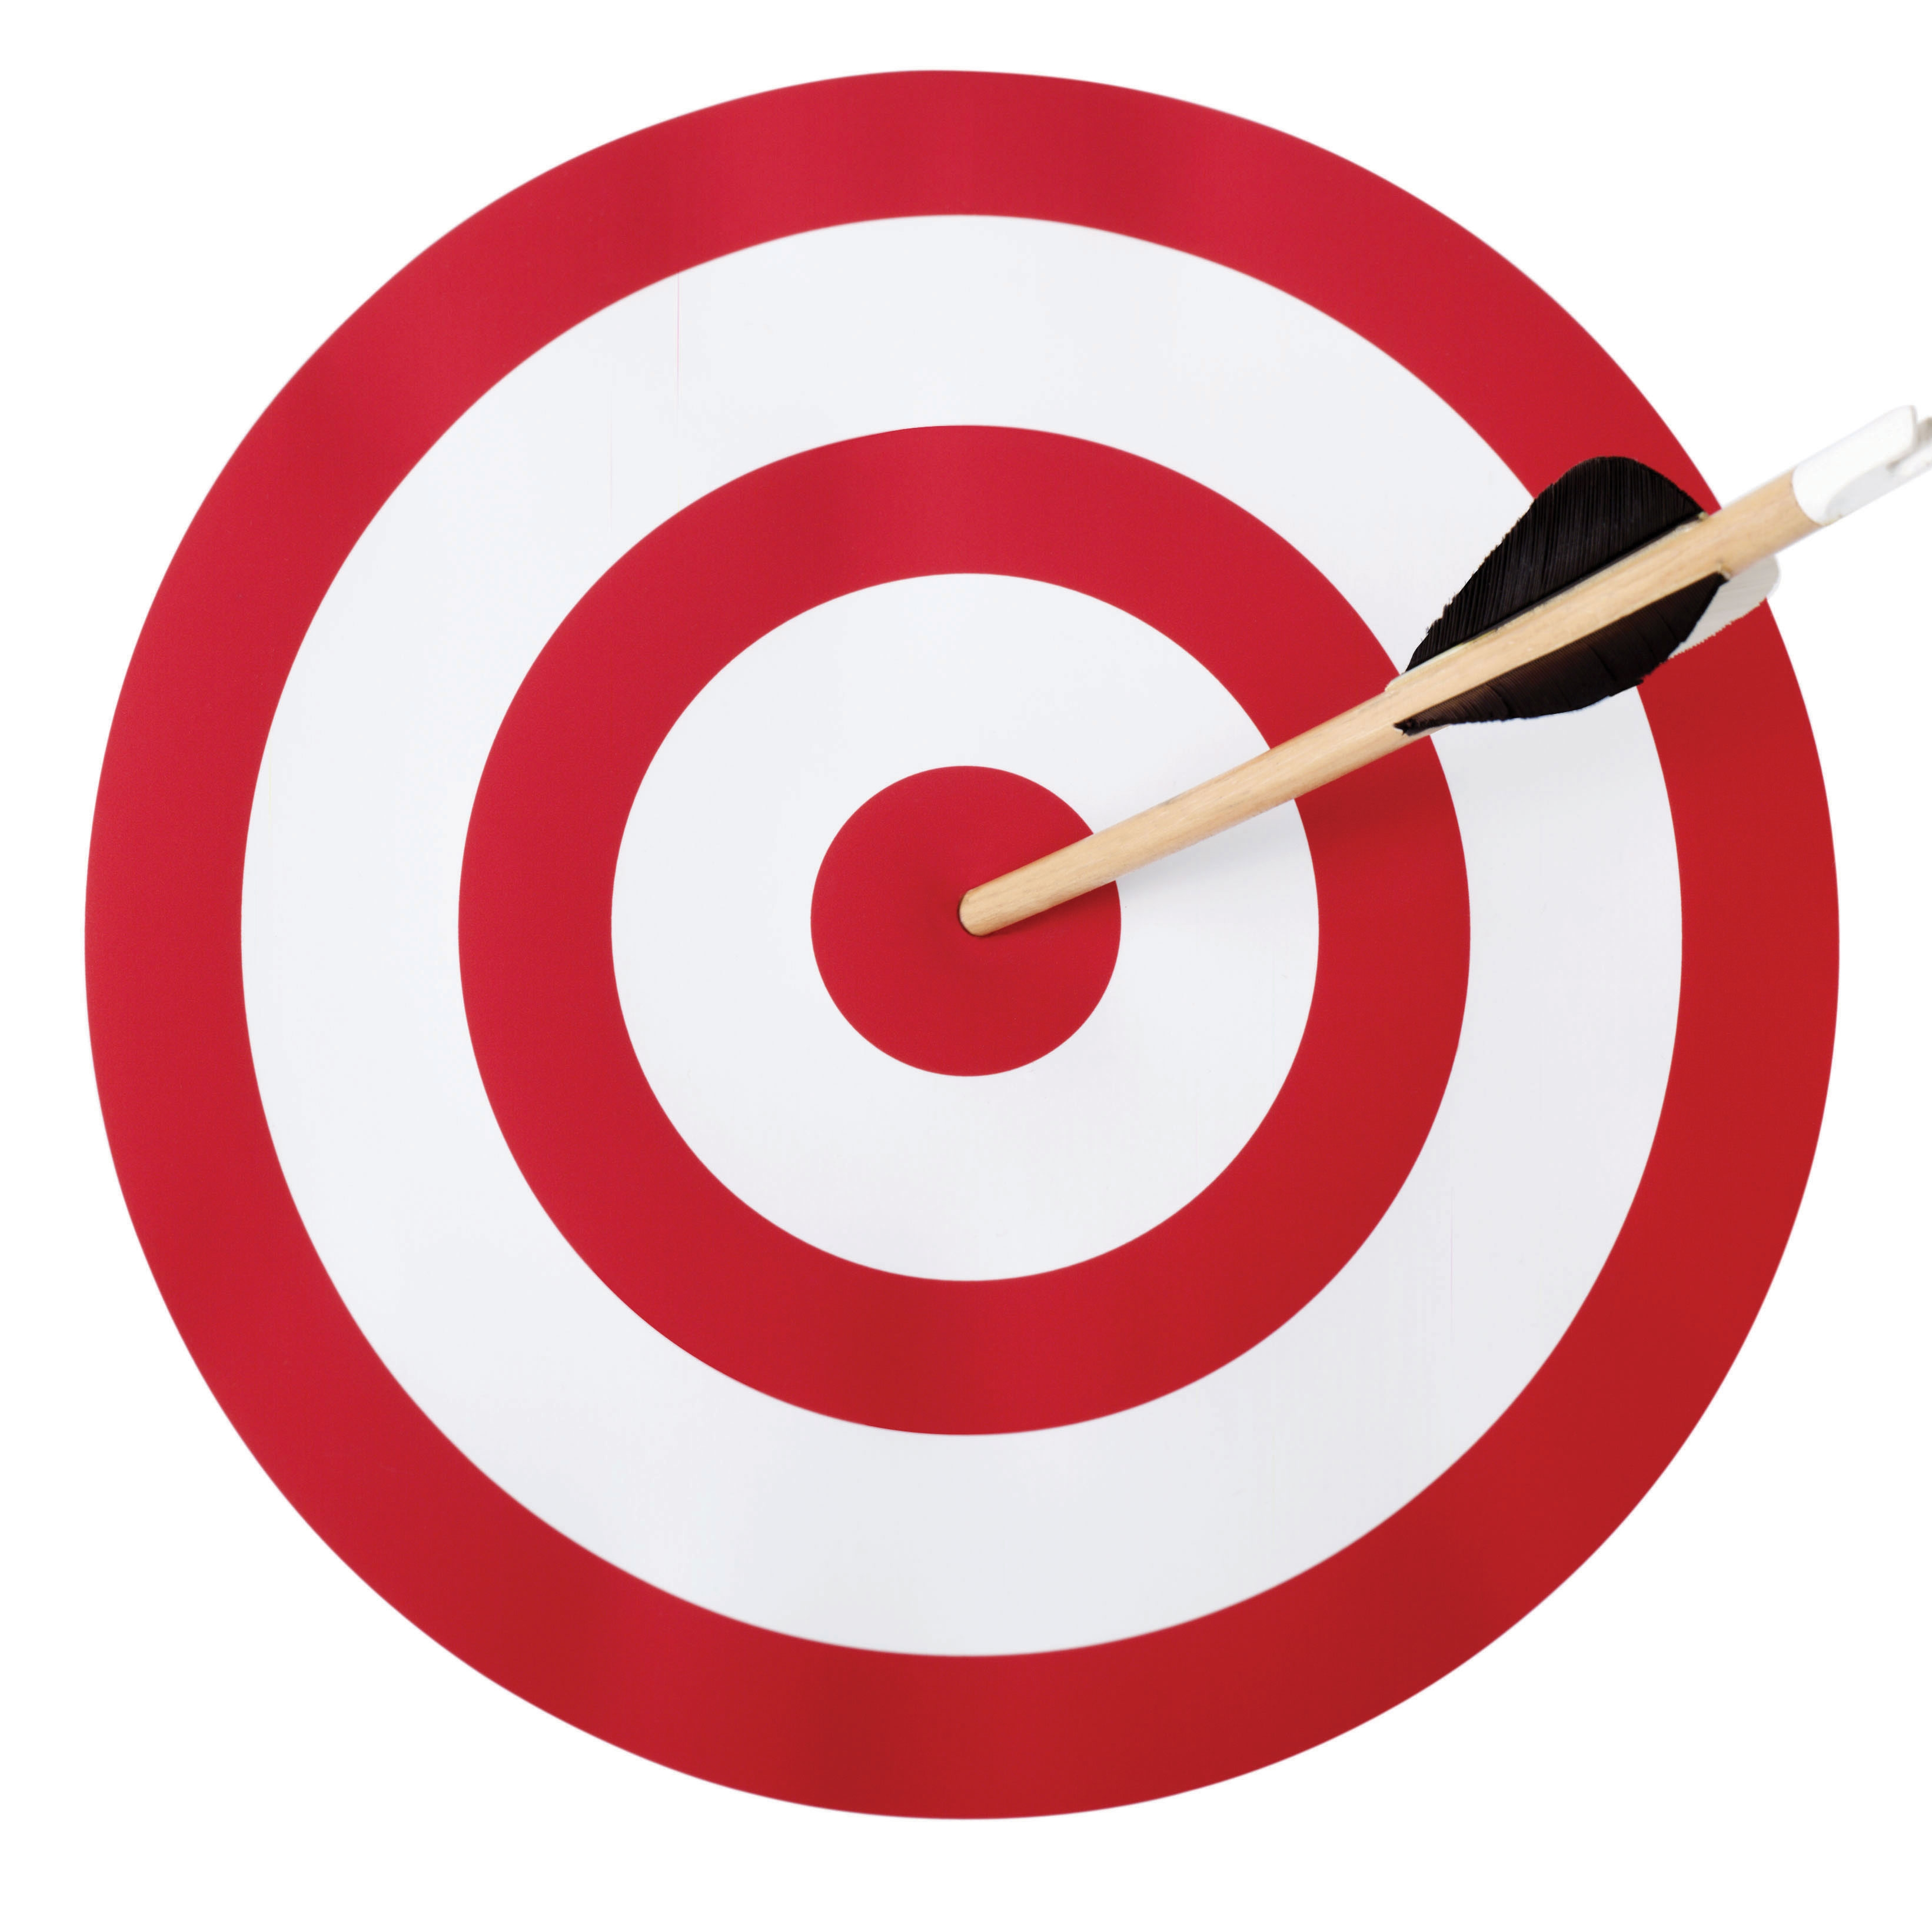 Bullseye clipart target learning. Fresh collection digital coloring